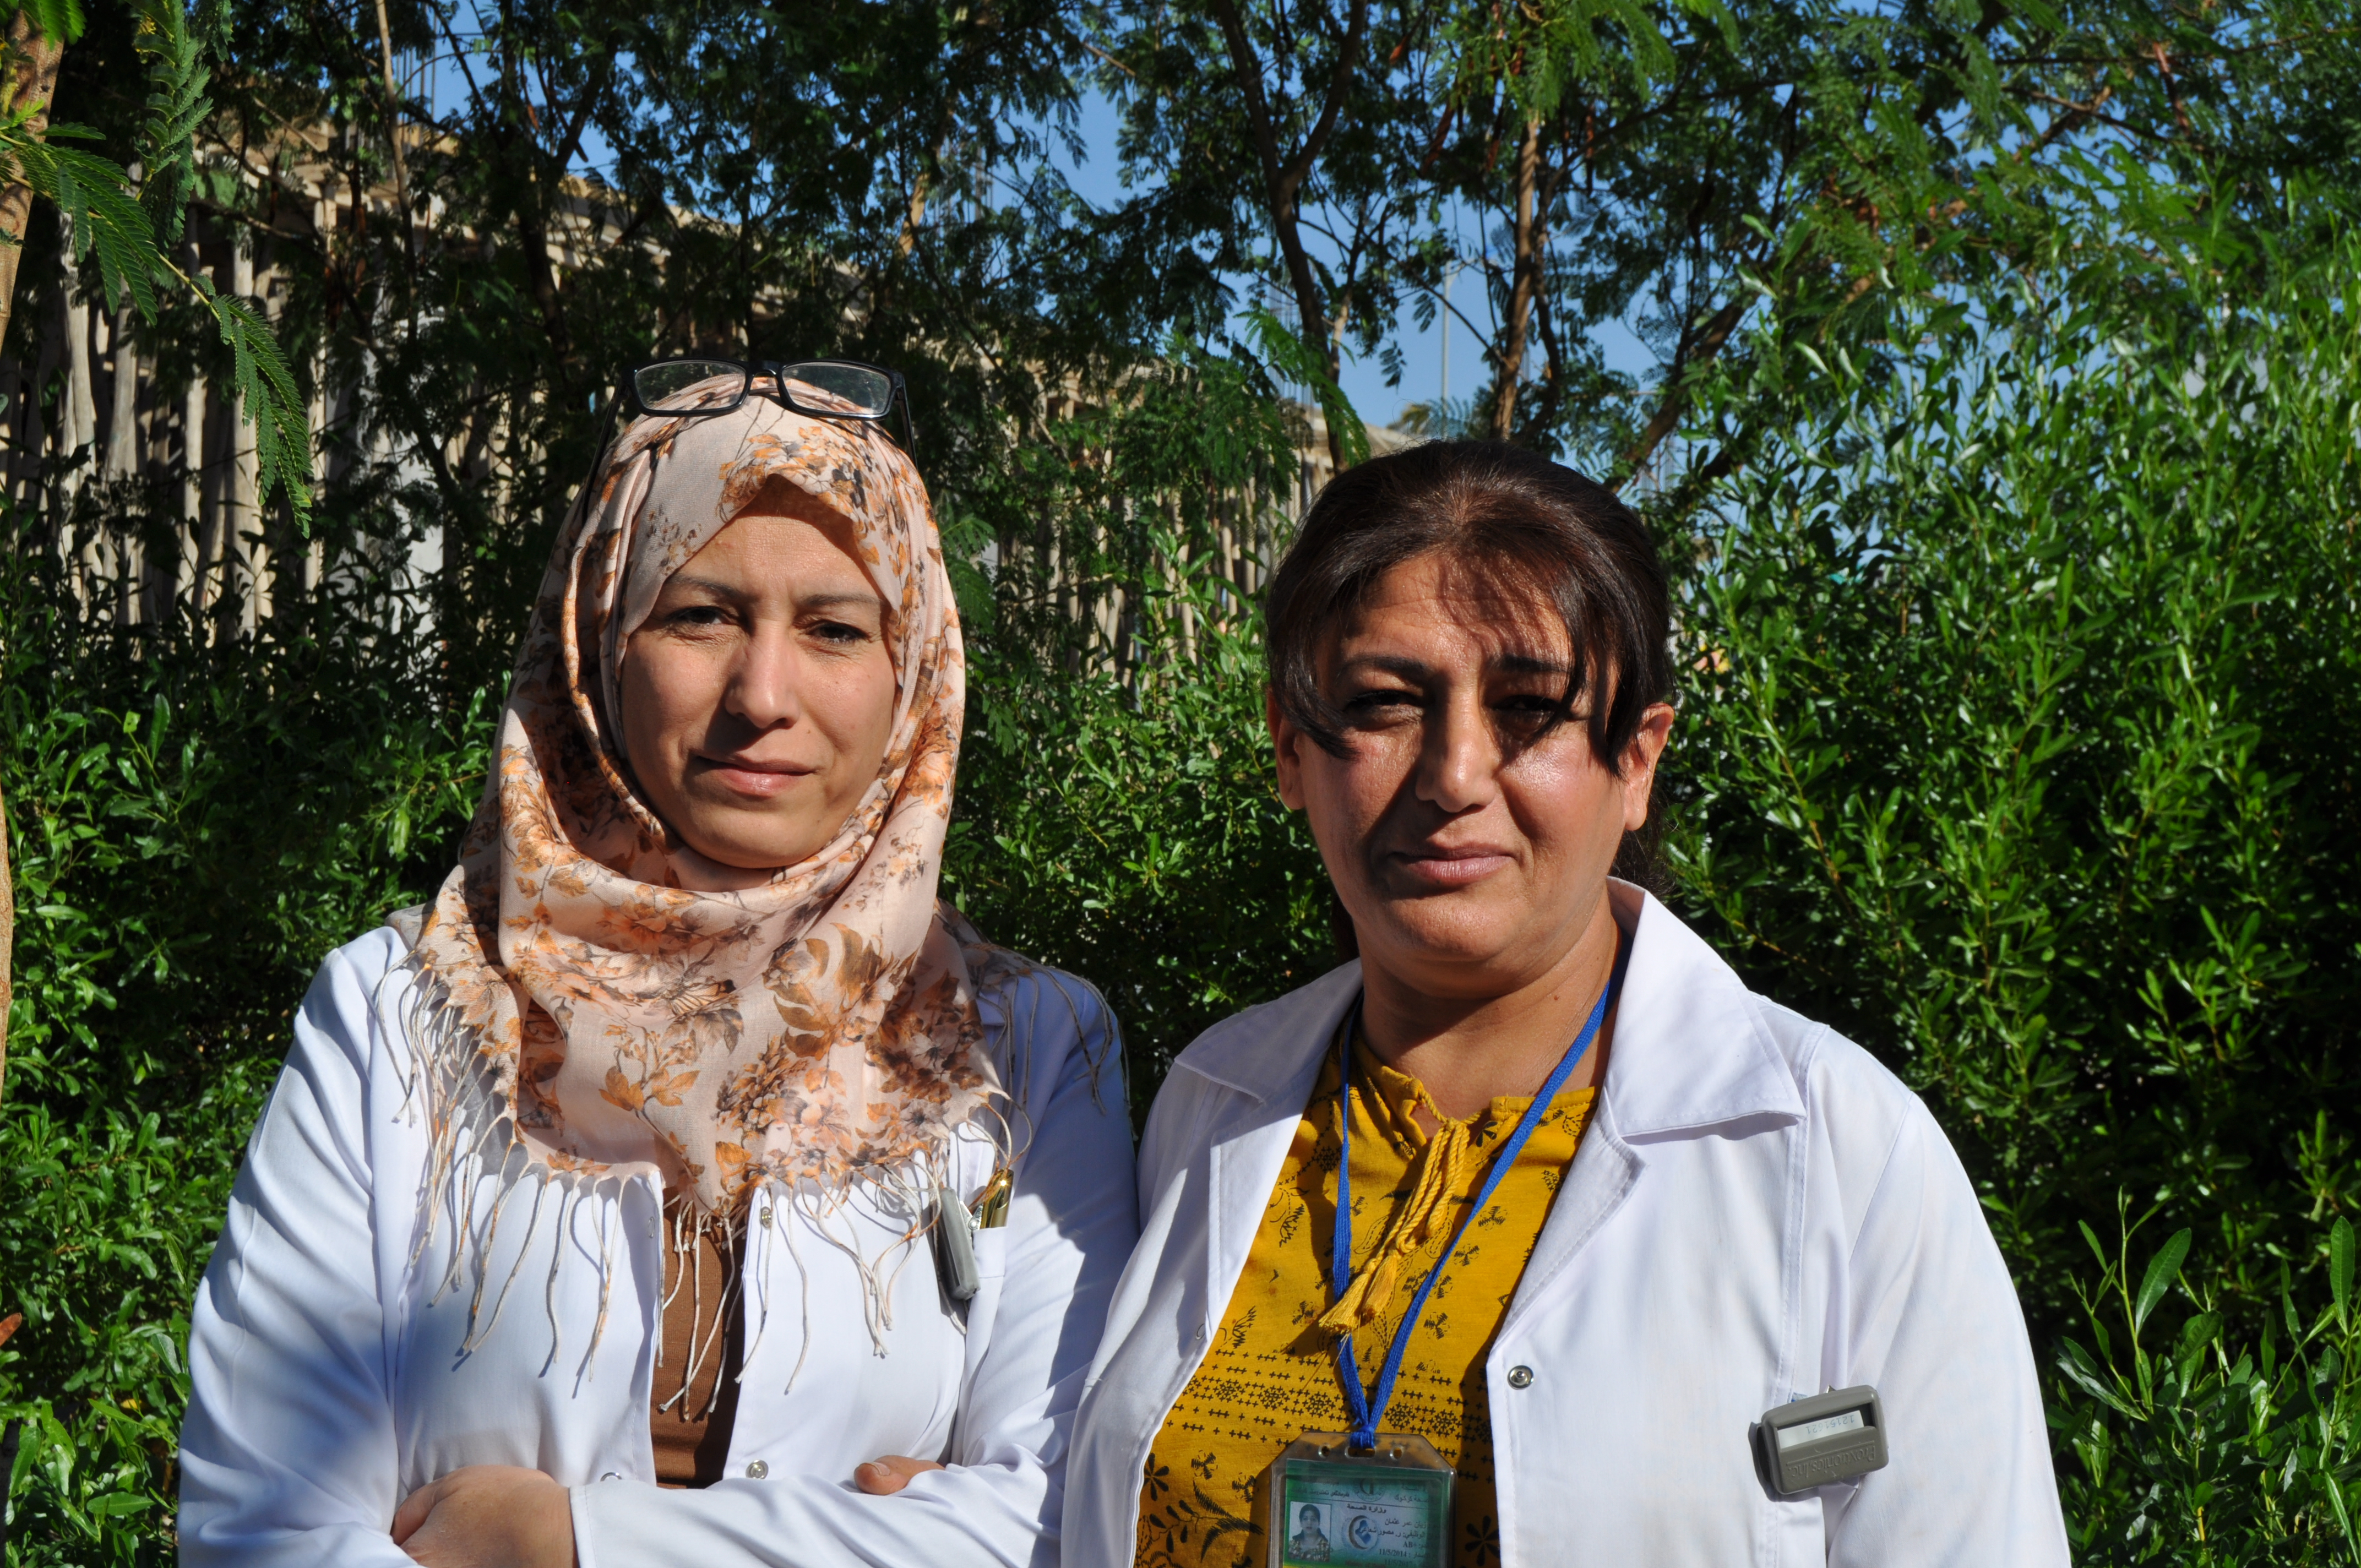 Two years of support to the oncology unit at Kirkuk hospital